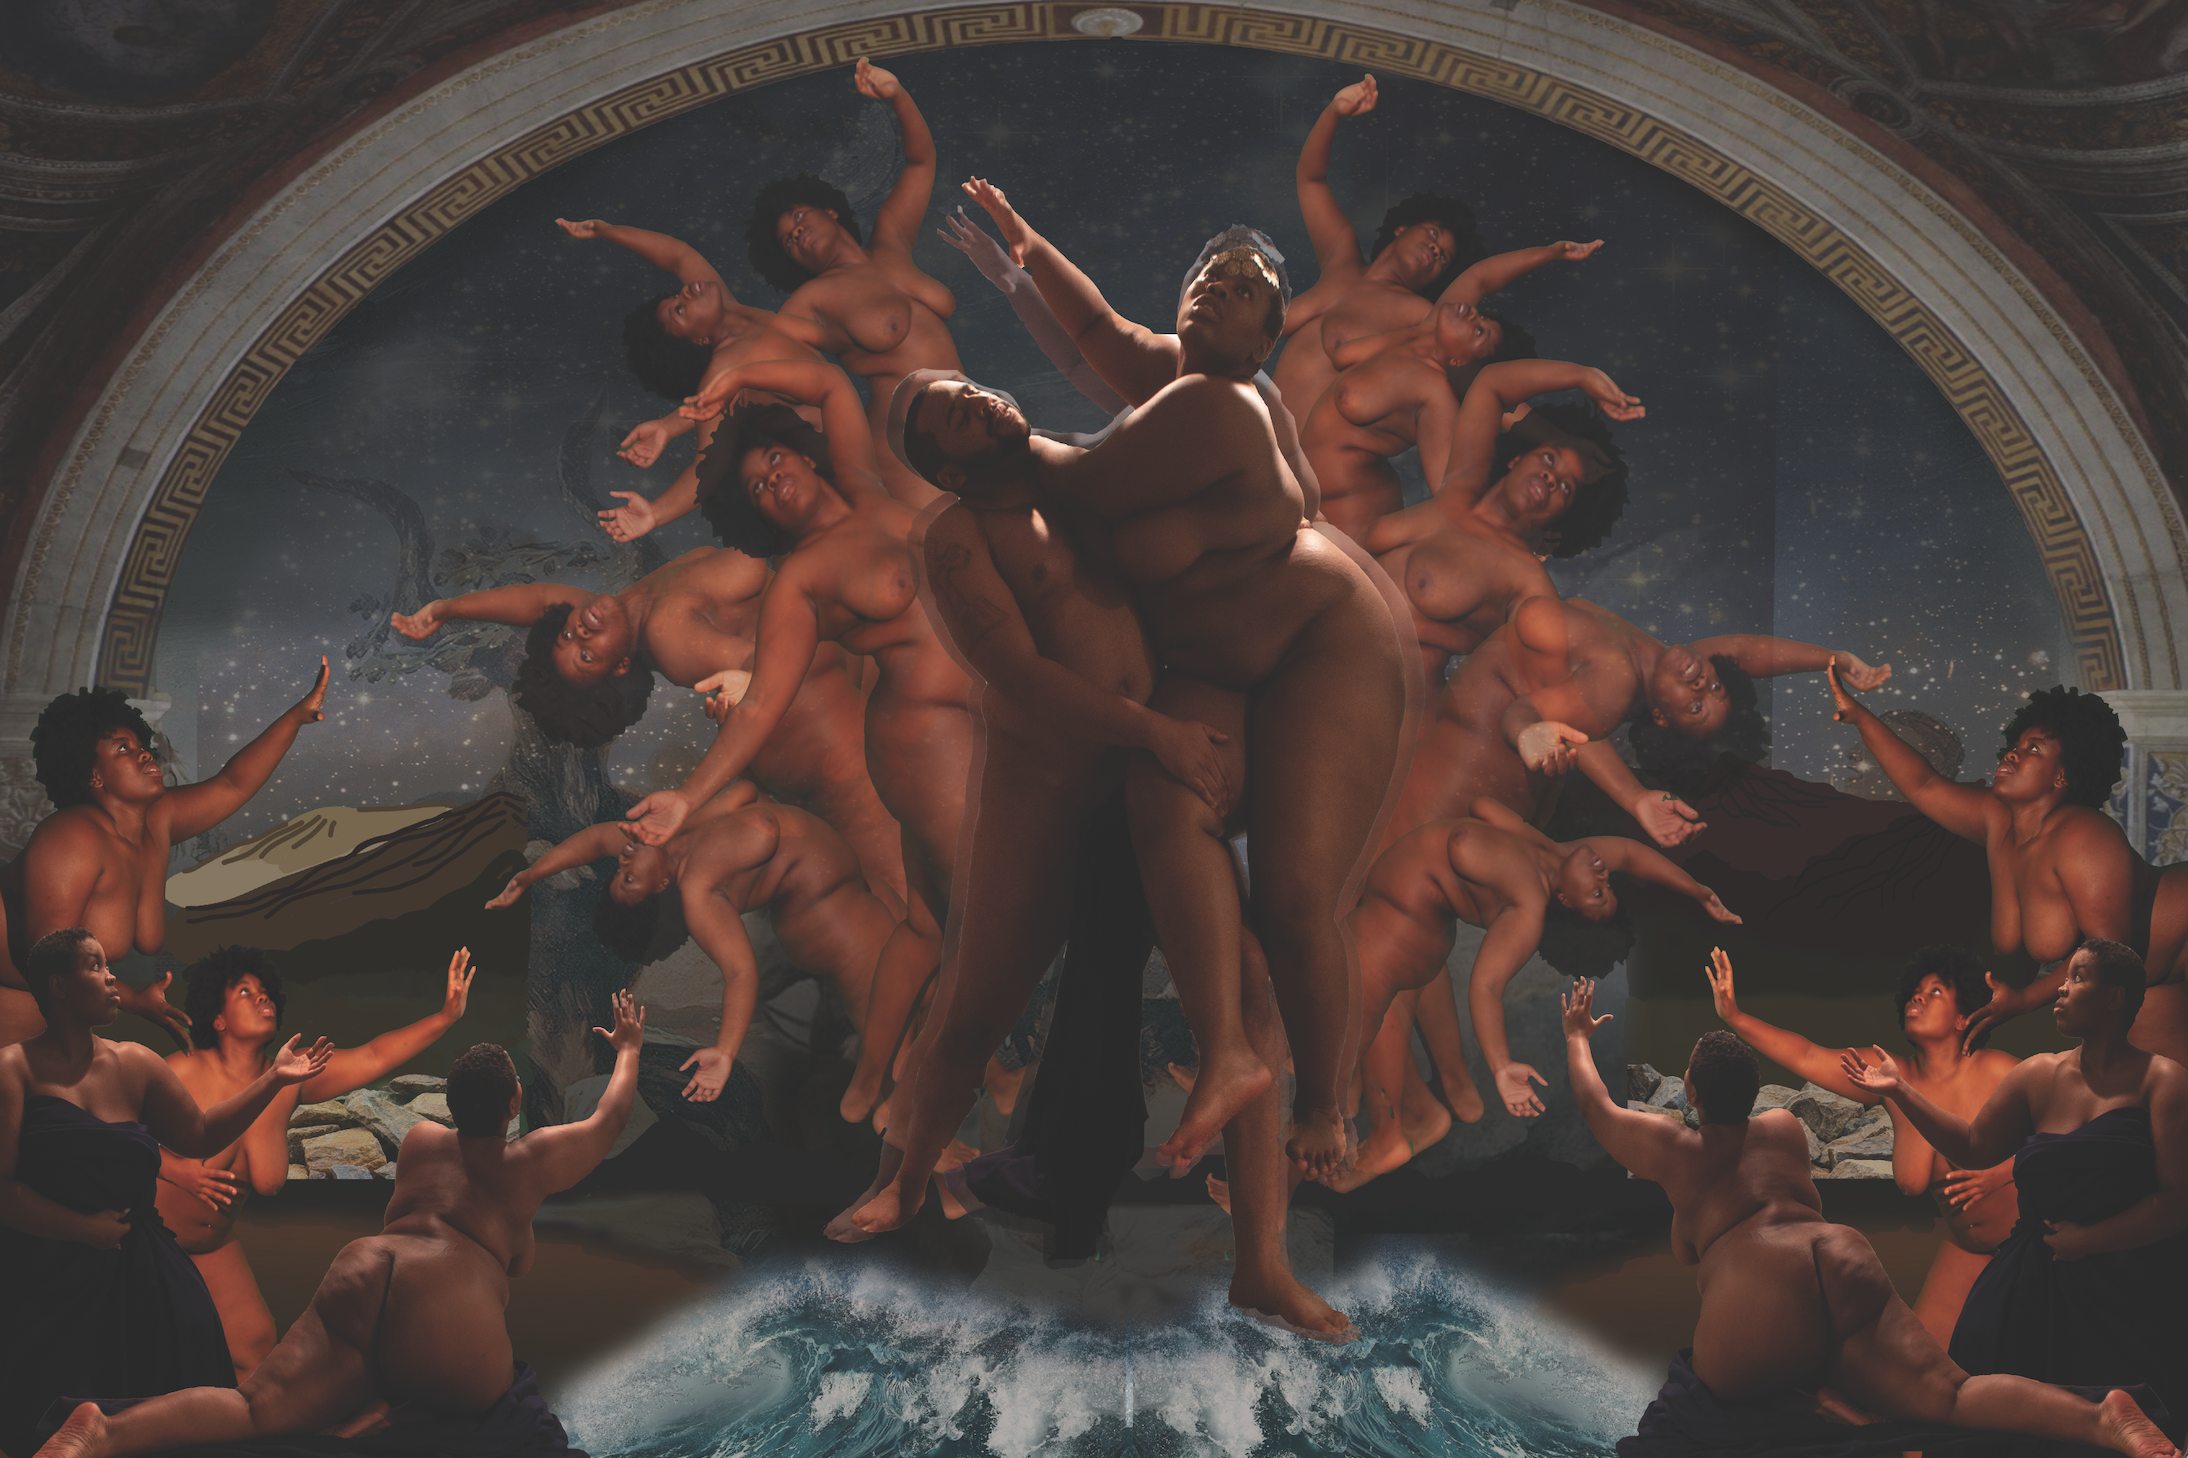 The recreation of the paining 'Rape of Innocence' in a photograph.